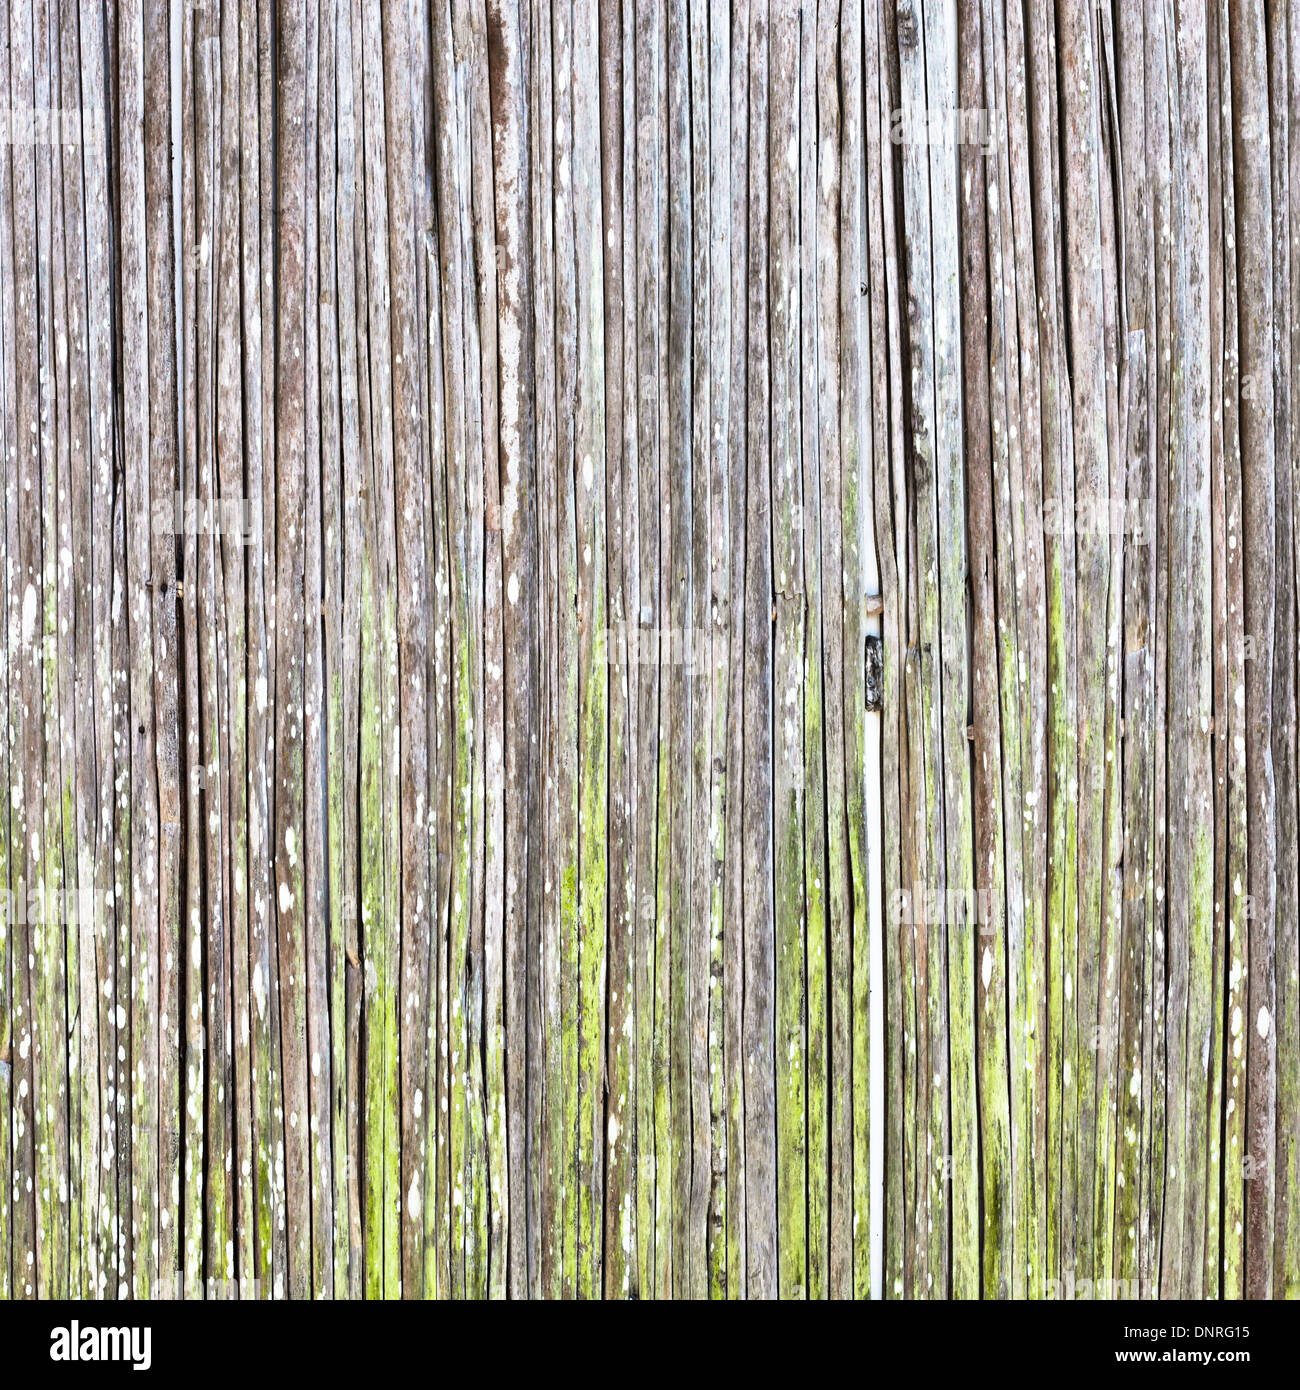 Reed wood fibres as a detailed background - Stock Image